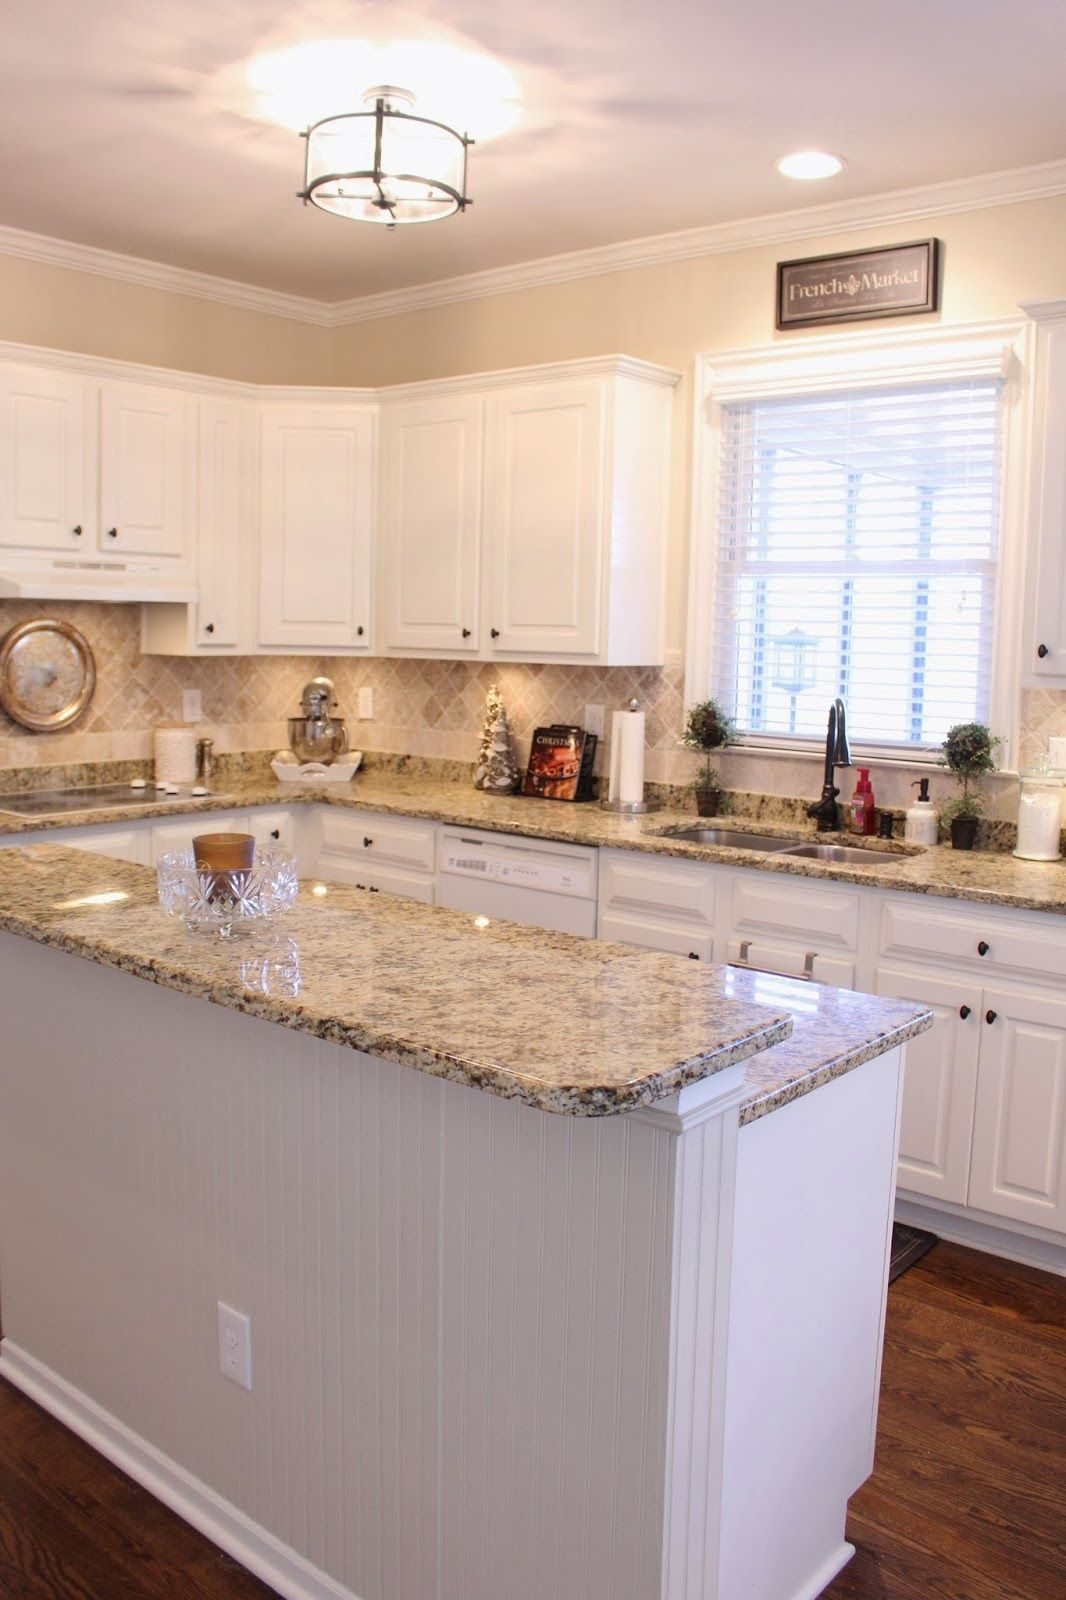 Dream kitchen kitchen pinterest kitchens house and kitchen design